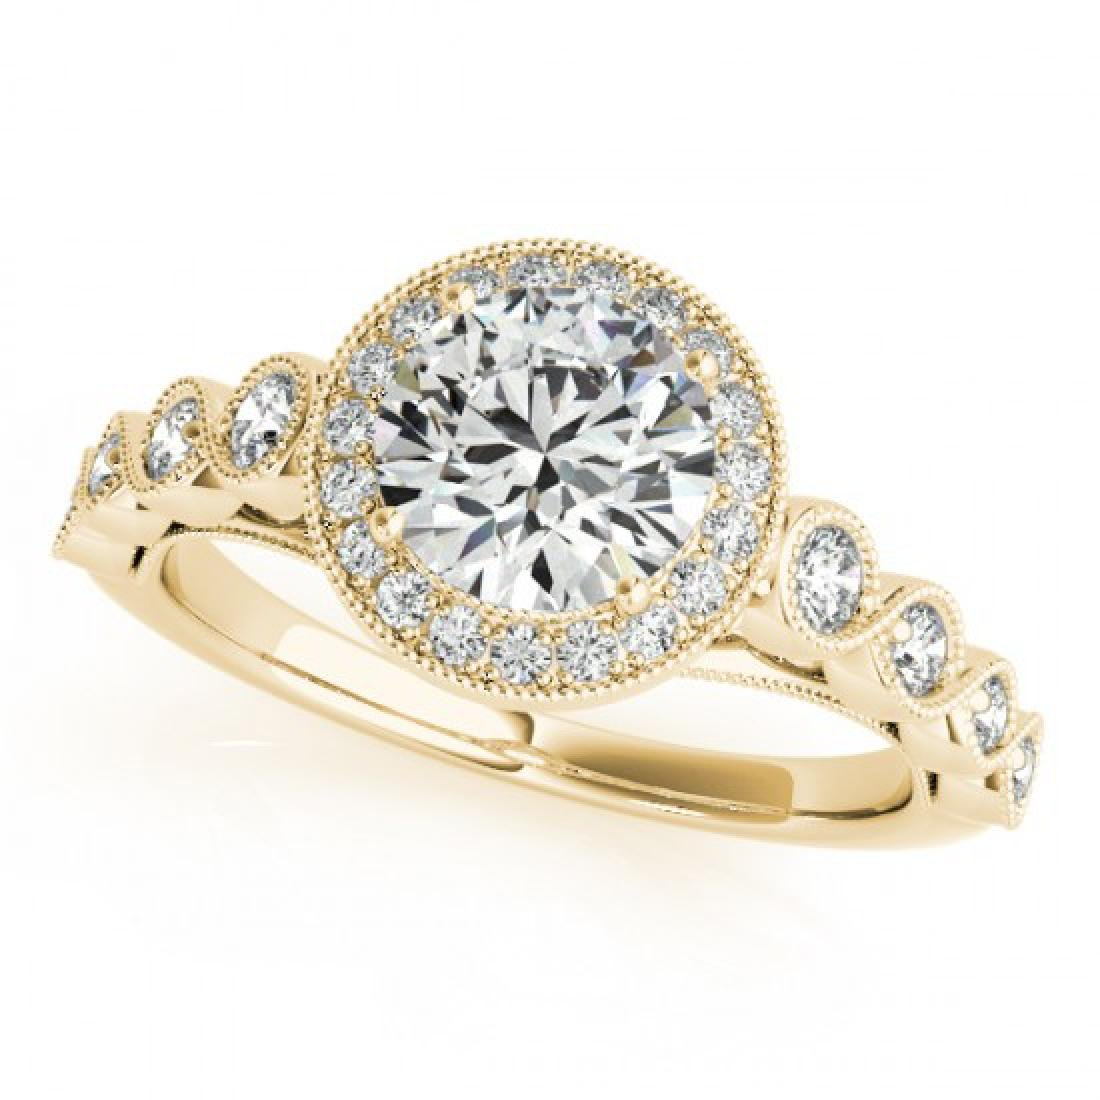 1.05 CTW Certified VS/SI Diamond Solitaire Halo Ring